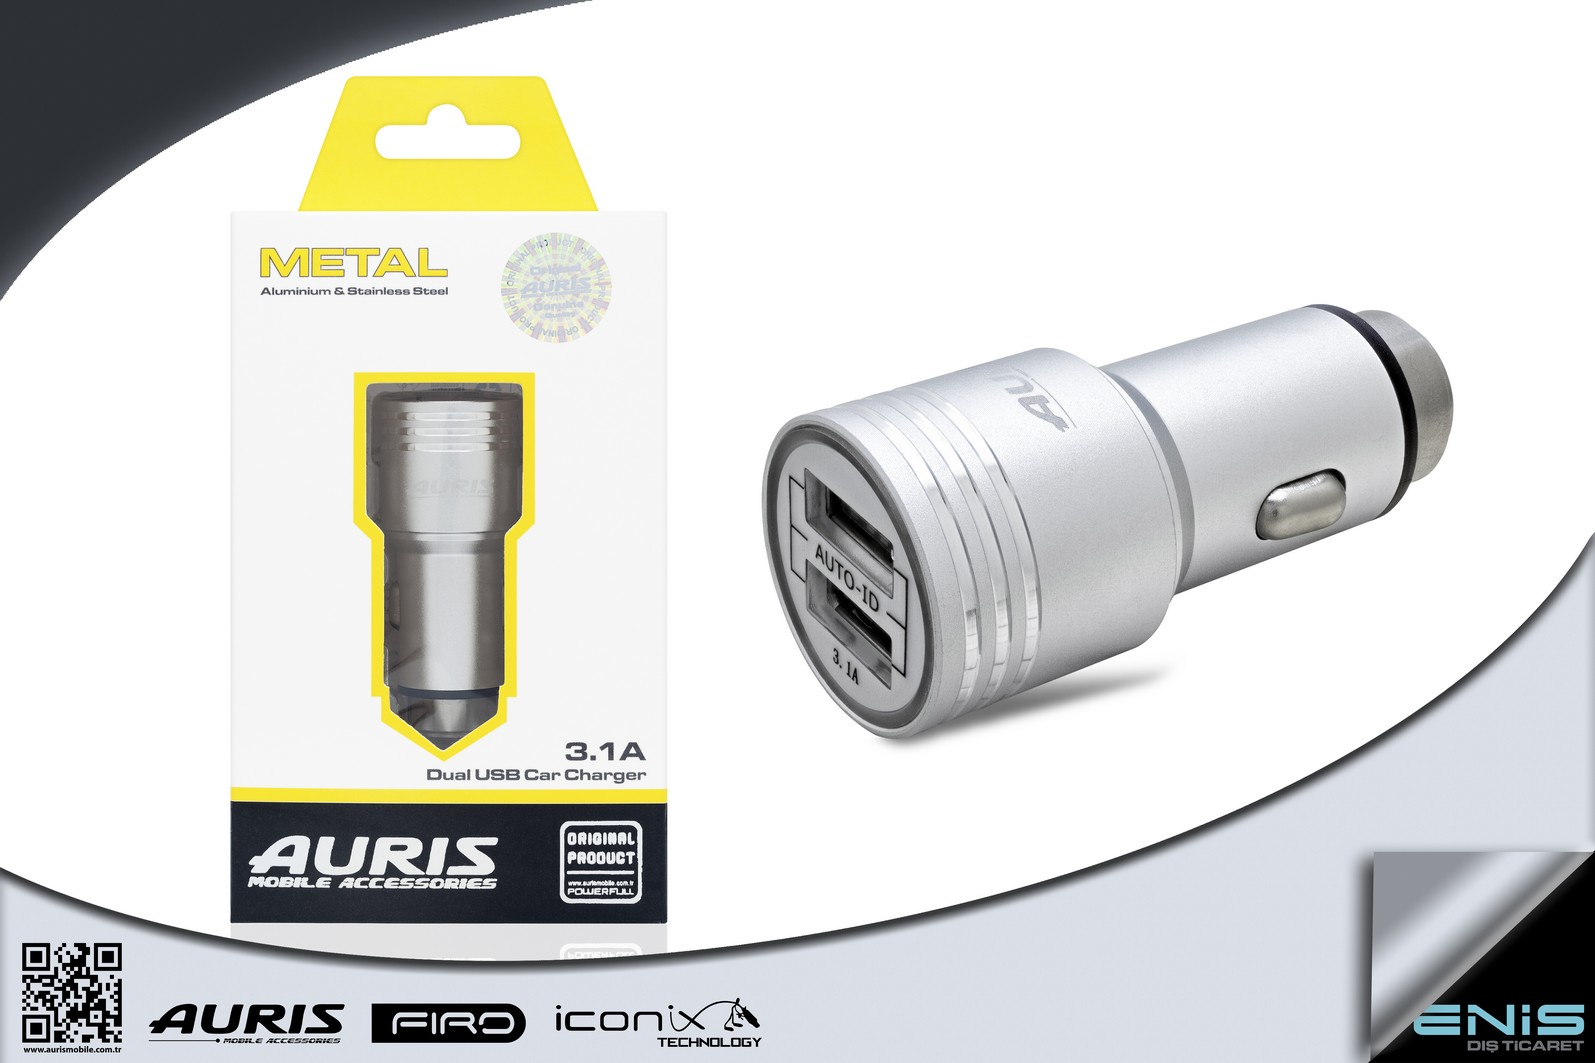 Metal Usb Car Charger 3.1A